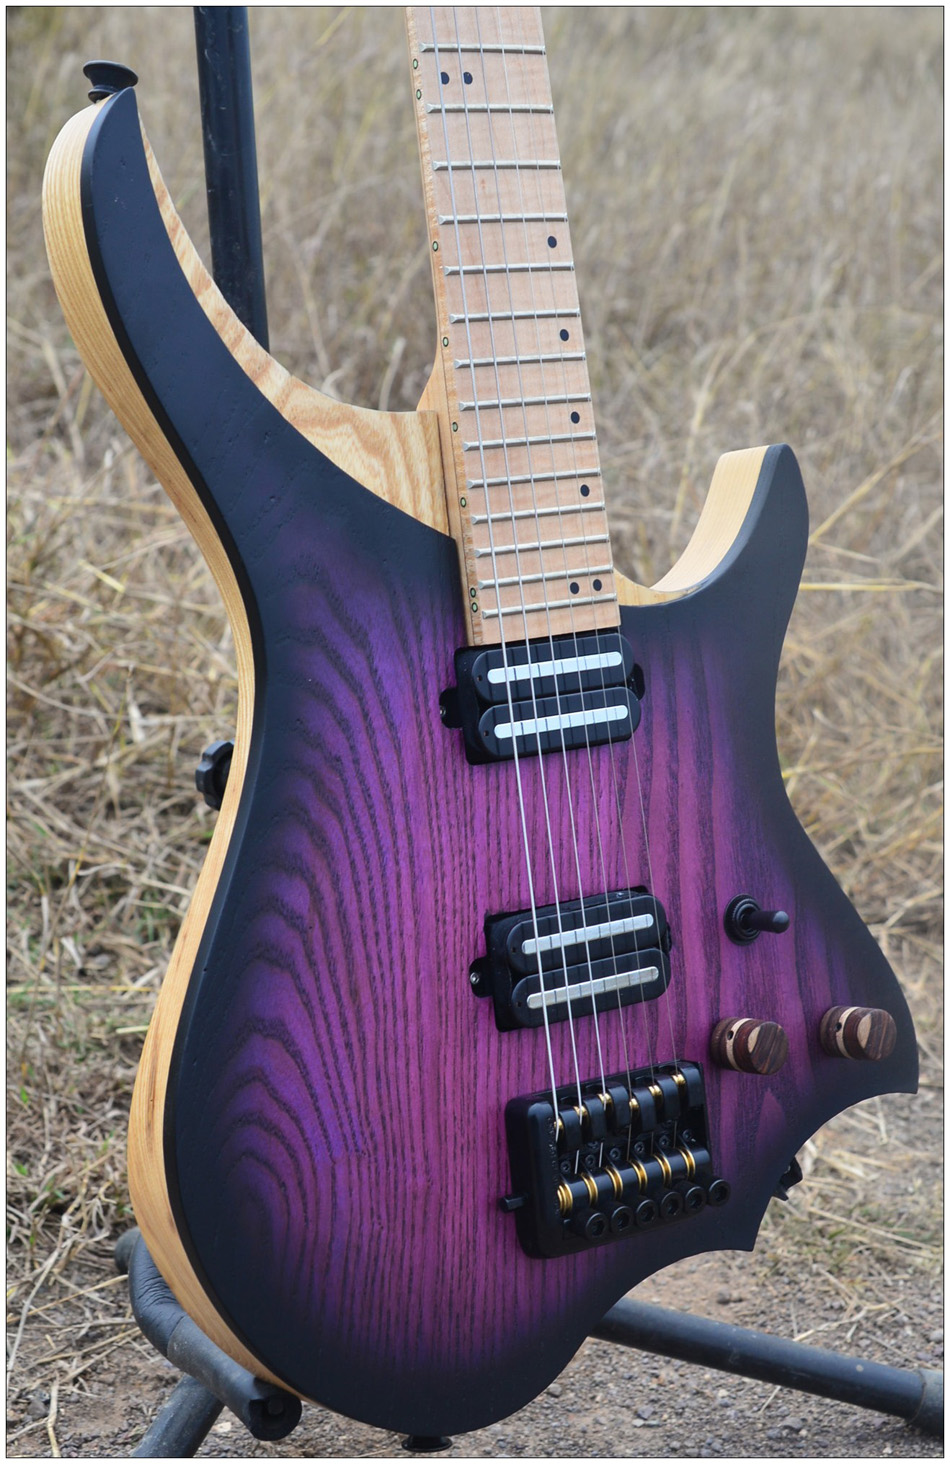 NK Headless Electric Guitar steinberger style Model Purple burst Color Flame maple Neck in stock Guitar free shipping brown burst tiger flame standard paul lp style guitar in stock lp electric guitar ems free shipping